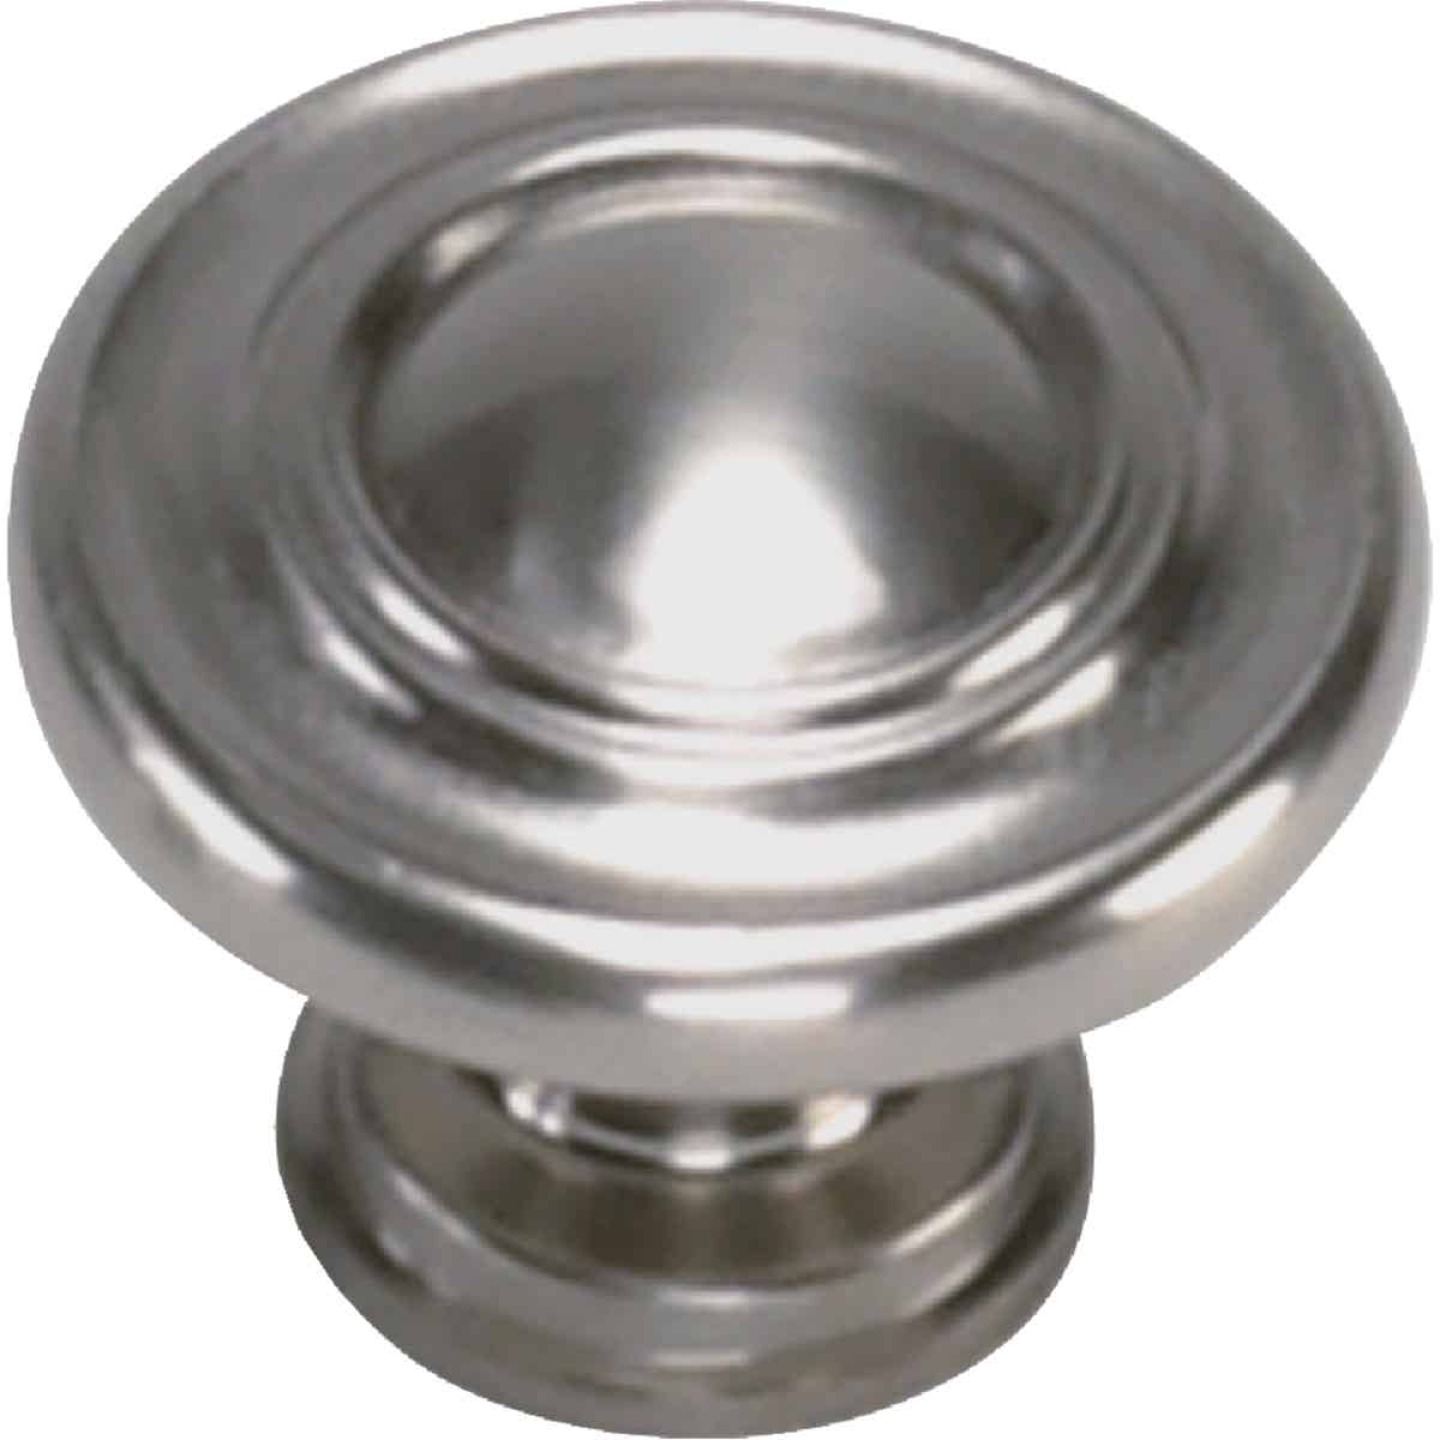 Laurey Nantucket Satin Pewter 1-3/8 In. Cabinet Knob Image 1